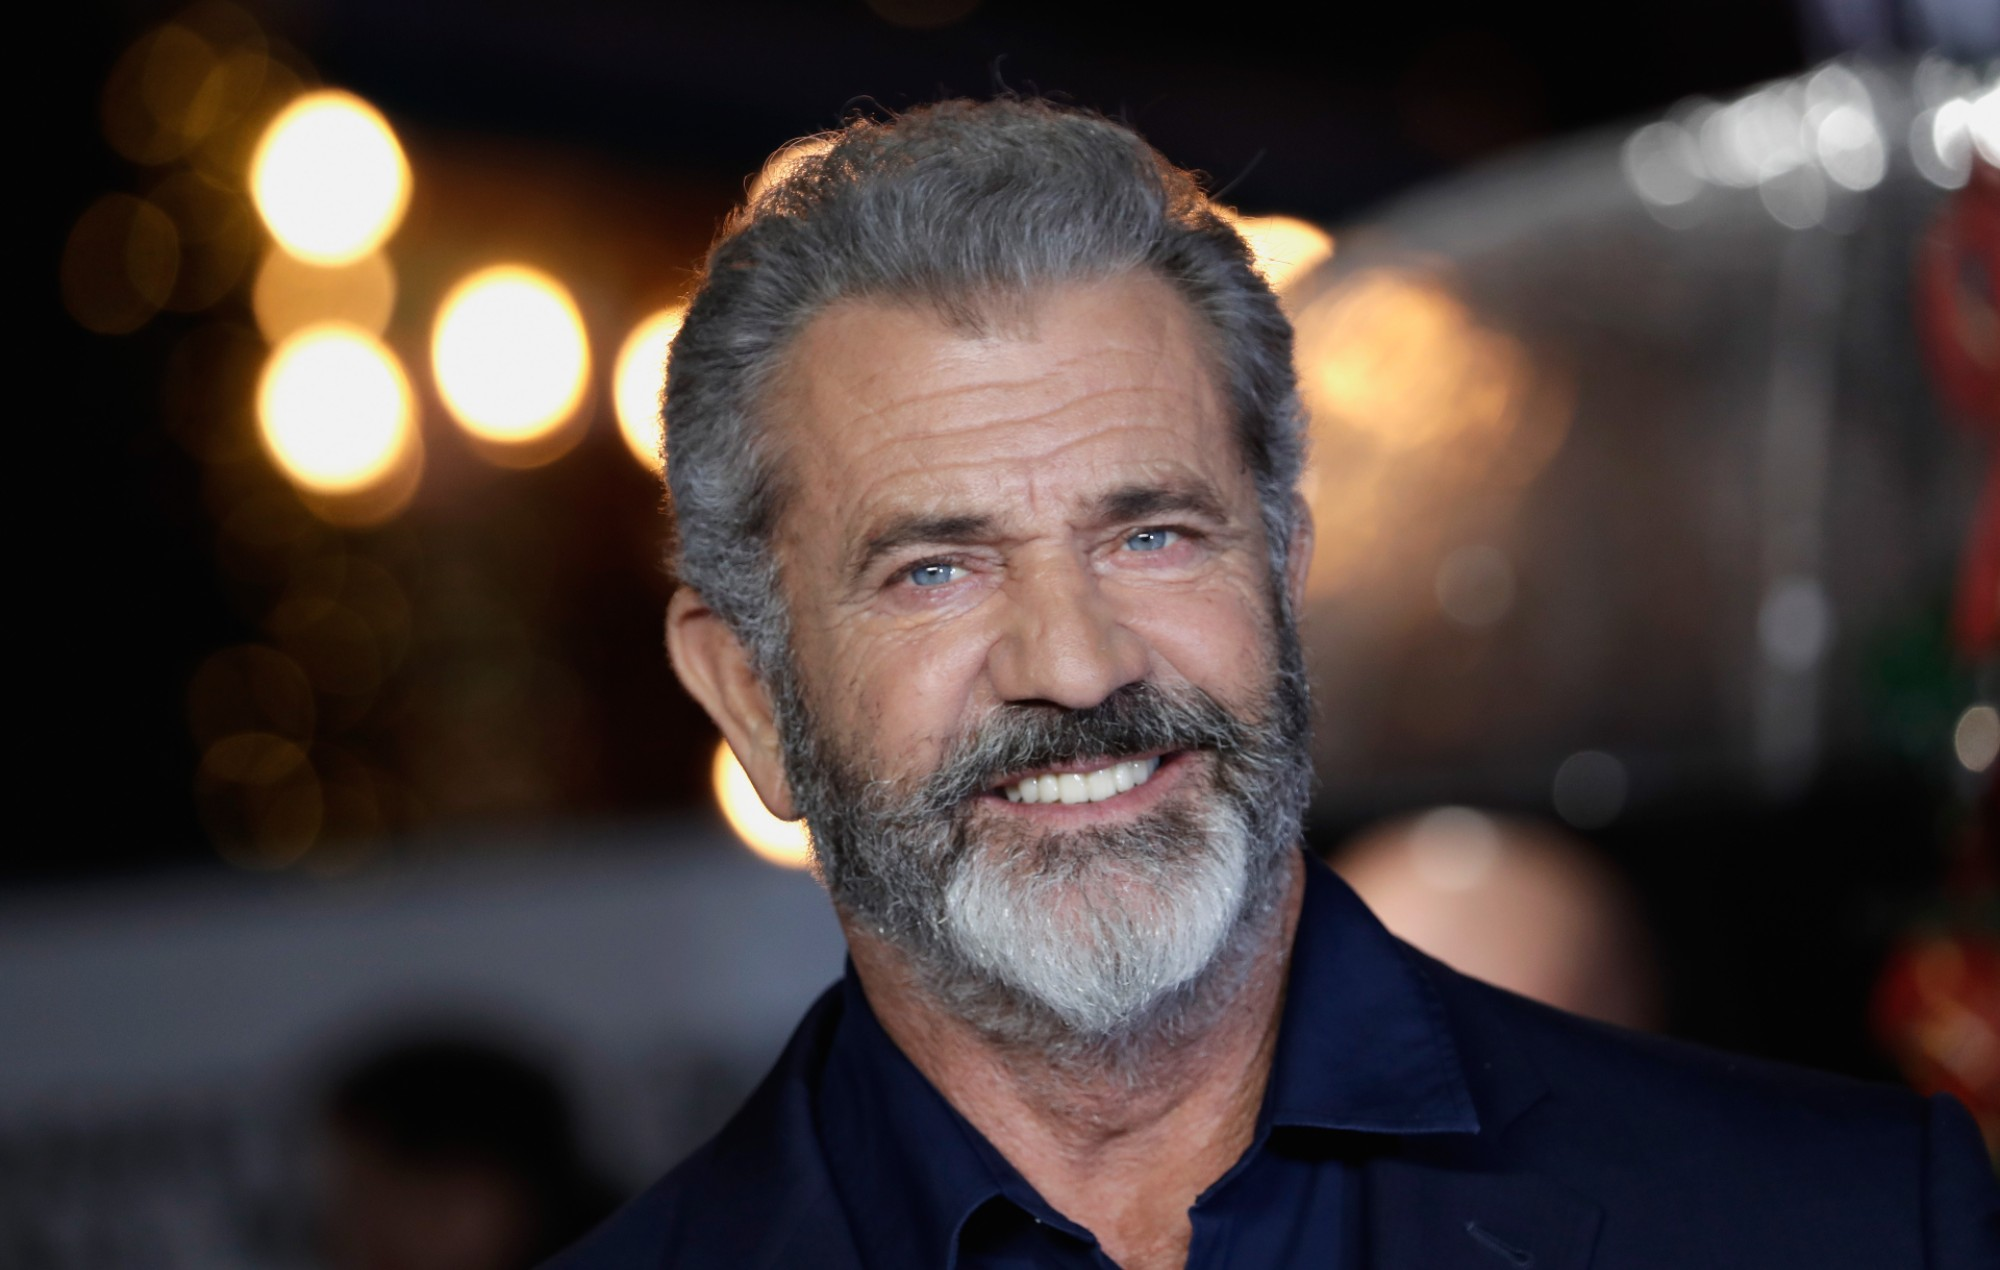 Mel Gibson and Colin Woodell cast in 'John Wick' prequel series 'The Continental'